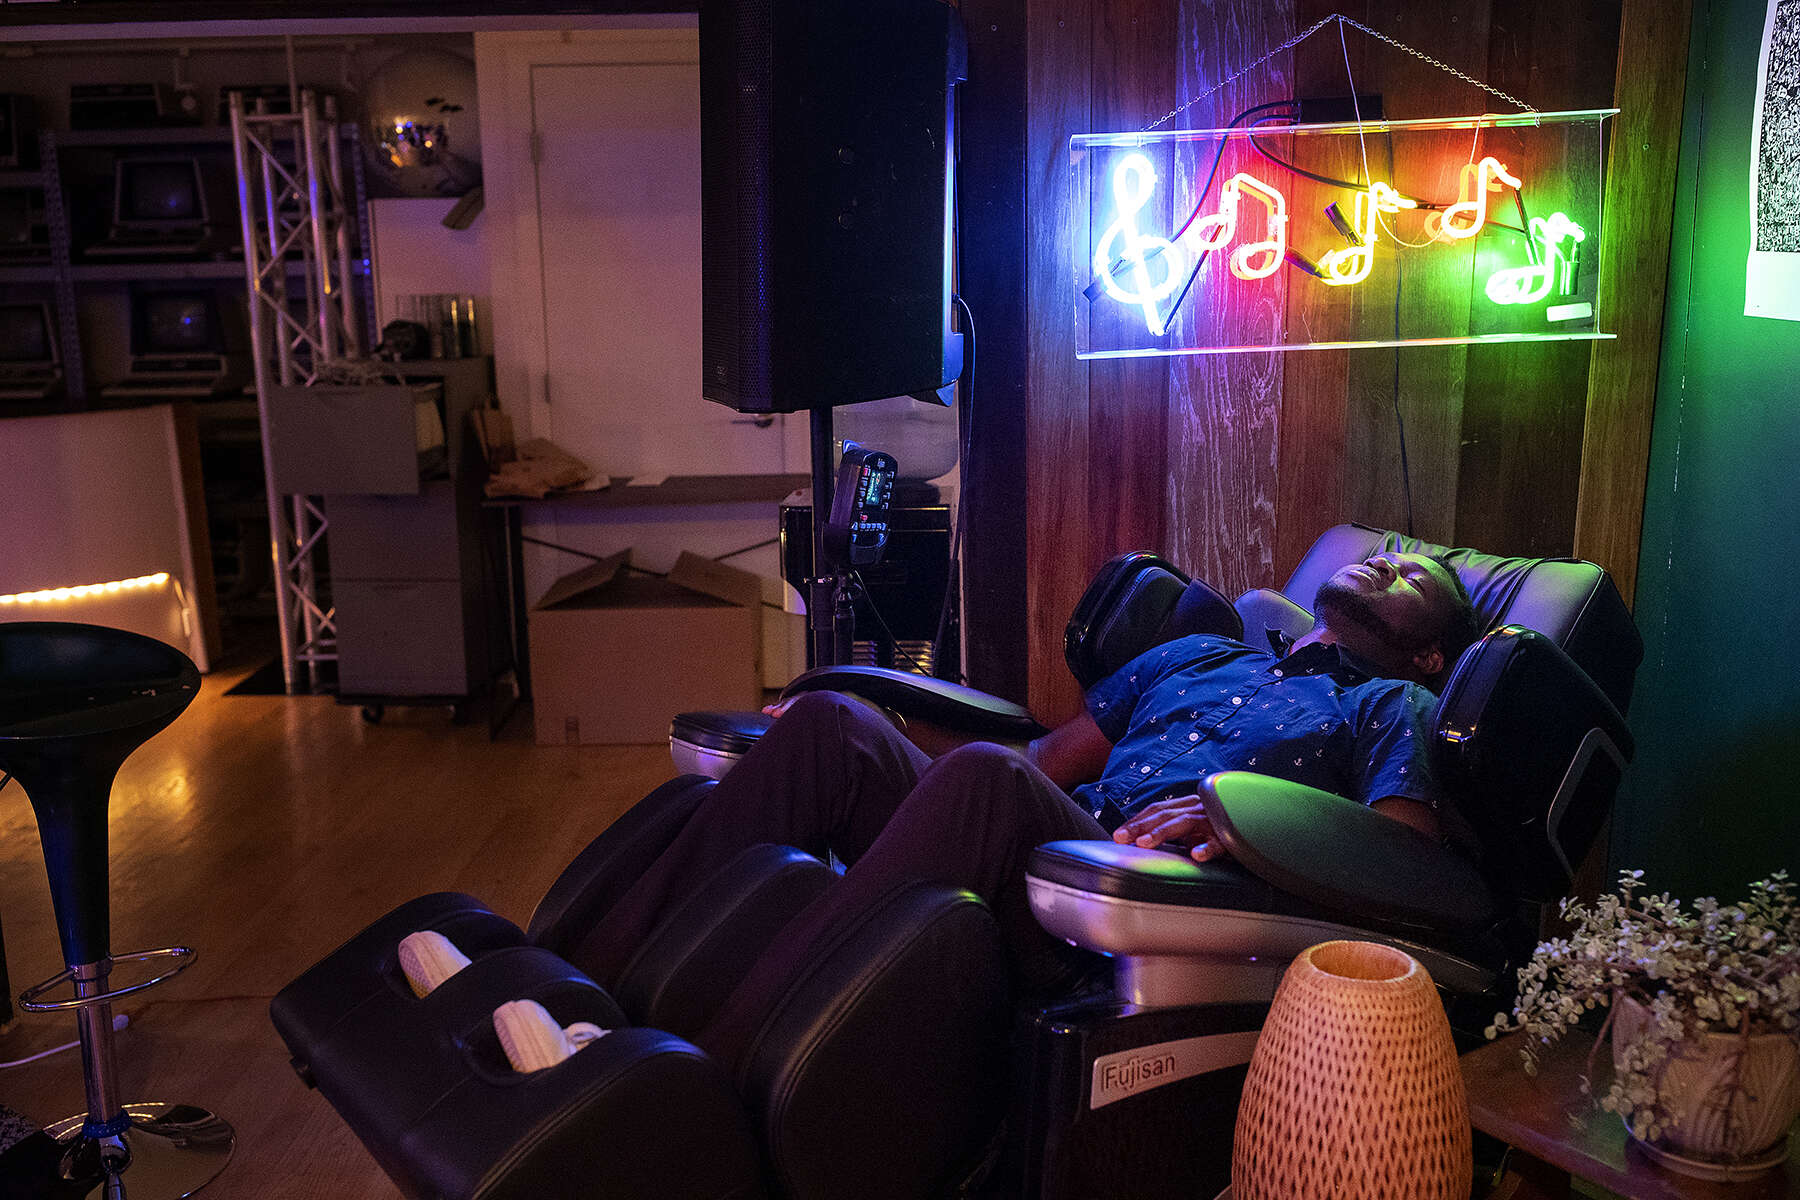 Entrepreneur Gideon Nweze, founder of a blockchain start-up for managing digital currencies, uses the massage chair at Node, a blockchain members club in San Francisco, Calif., on August 9, 2018. Node is a member's club for the blockchain and crypto-currency community and the club functions as a community gathering space and co-working office.